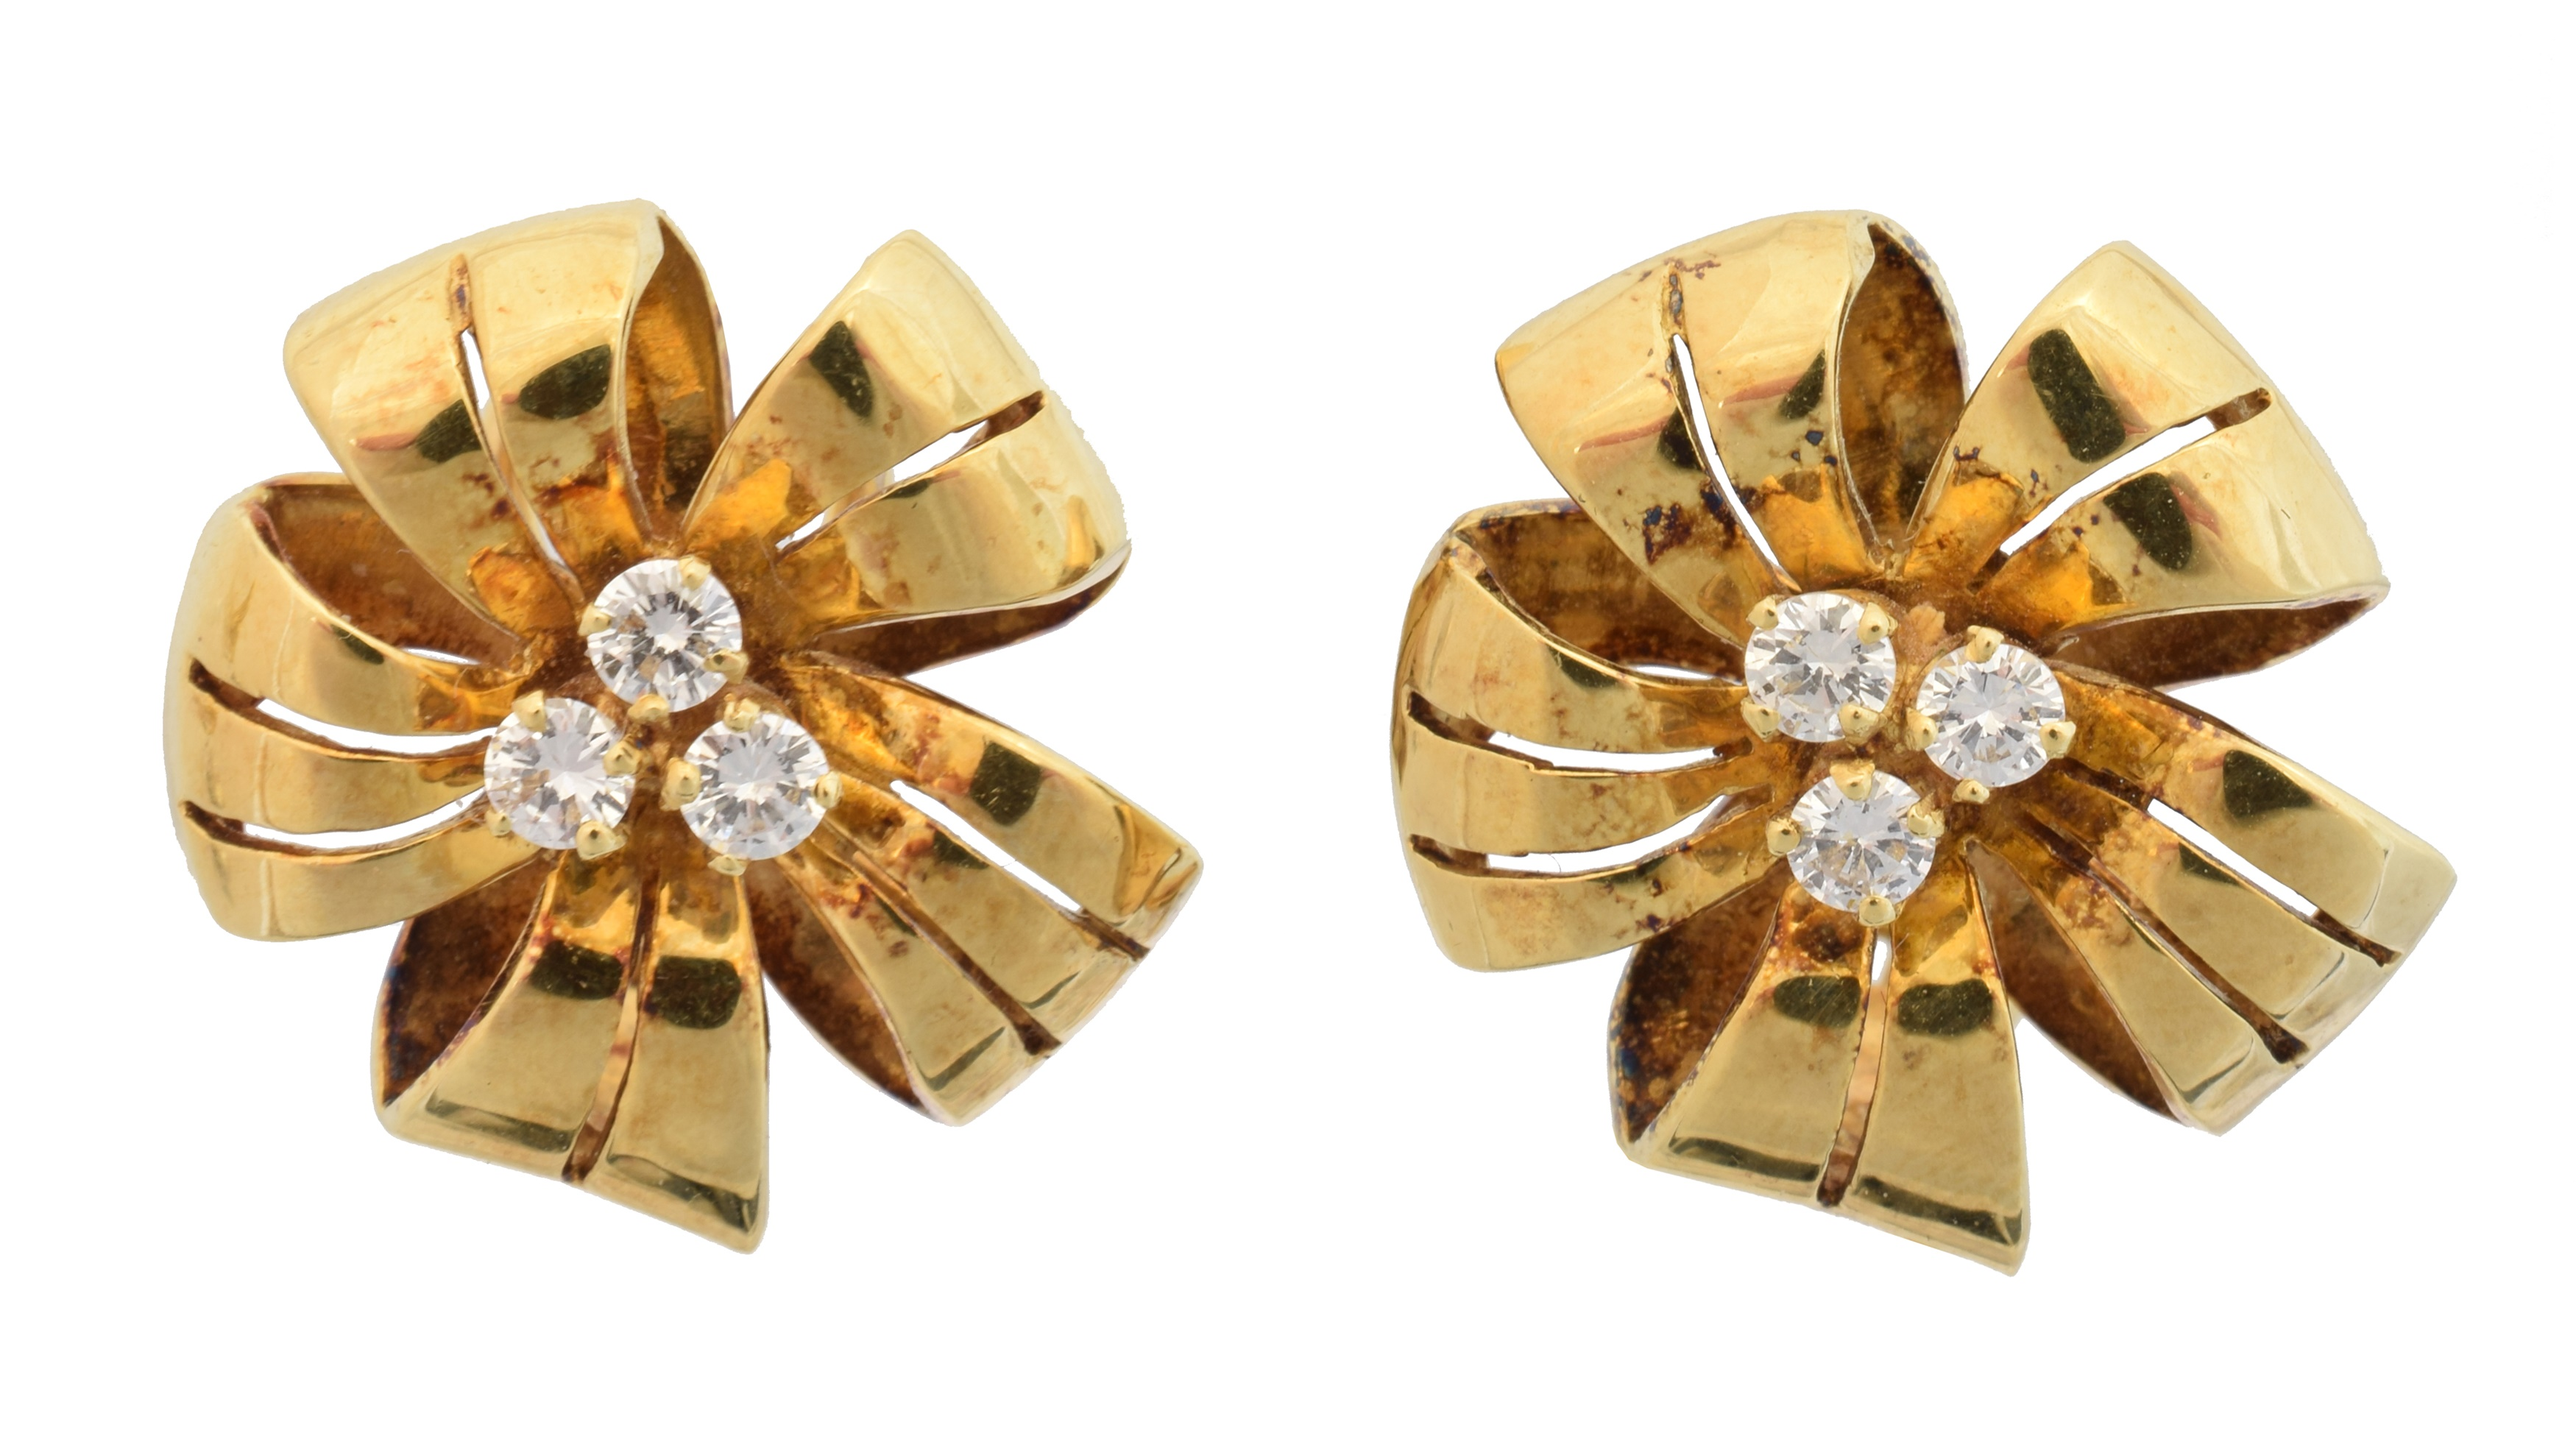 A pair of 18ct gold diamond floral earrings by Cropp & Farr, each designed as a brilliant cut diamond trefoil, within a pierced floral surround, estimated total diamond weight 0.40ct, maker's marks for Cropp & Farr, hallmarks for London, 1994, length 2cm, gross weight 12.4g.